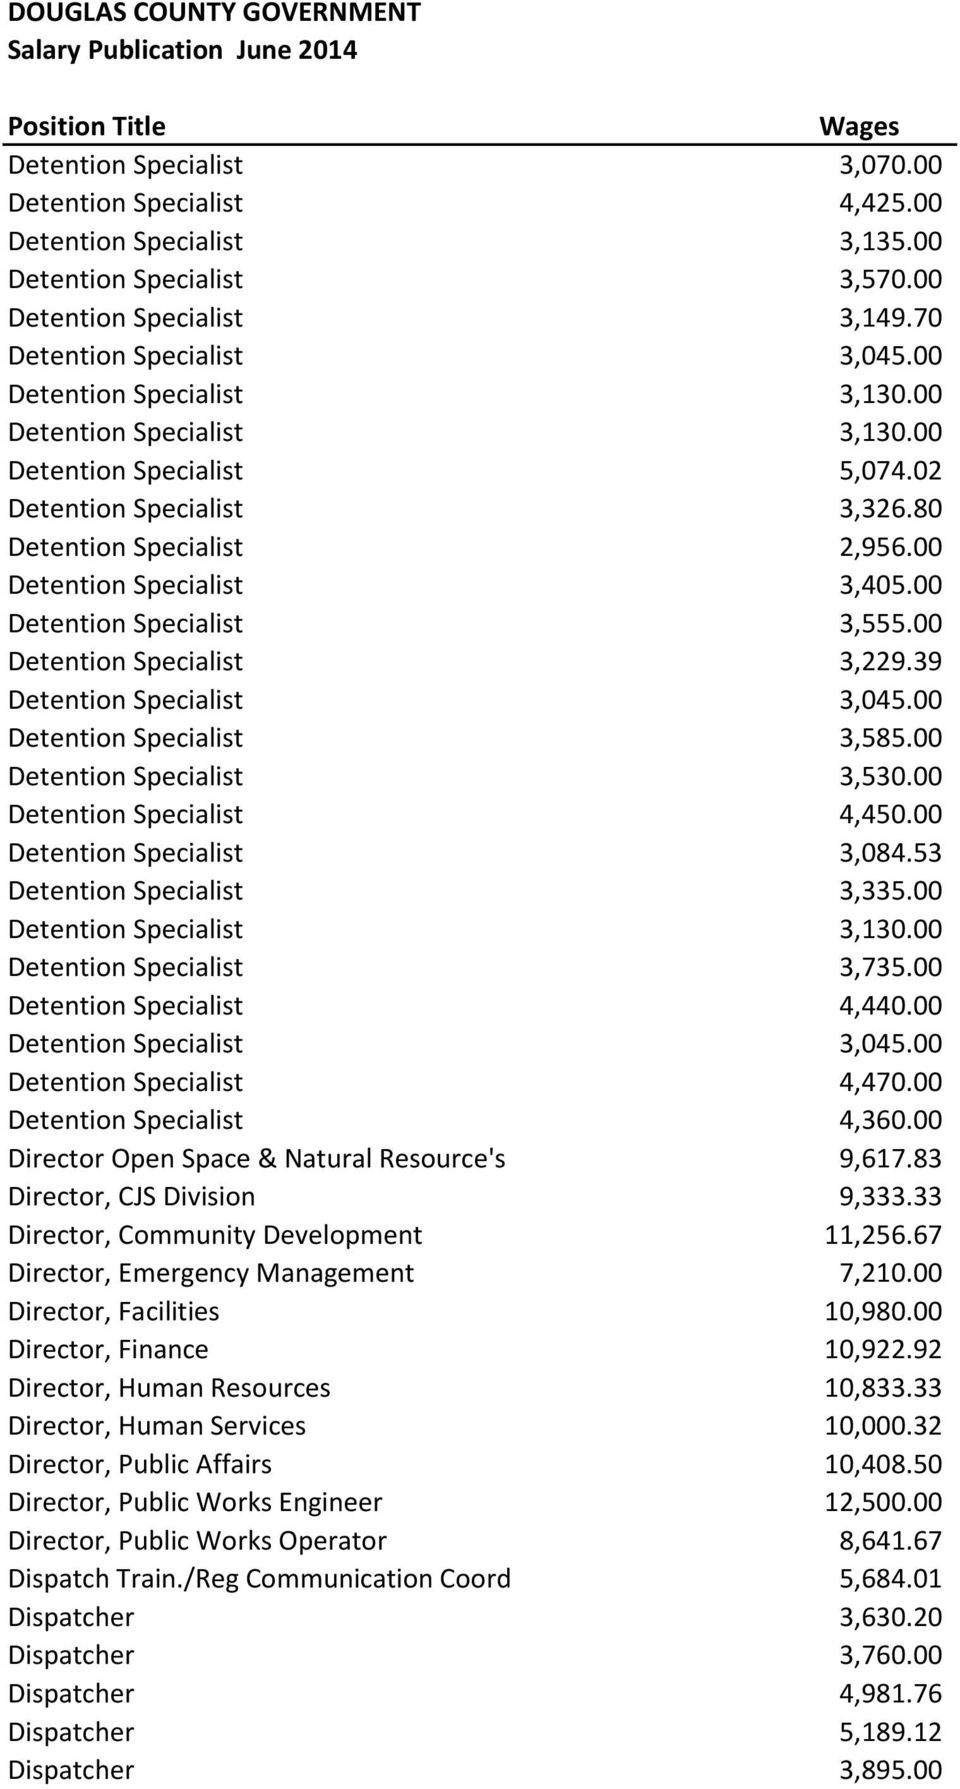 00 Detention Specialist 3,555.00 Detention Specialist 3,229.39 Detention Specialist 3,045.00 Detention Specialist 3,585.00 Detention Specialist 3,530.00 Detention Specialist 4,450.